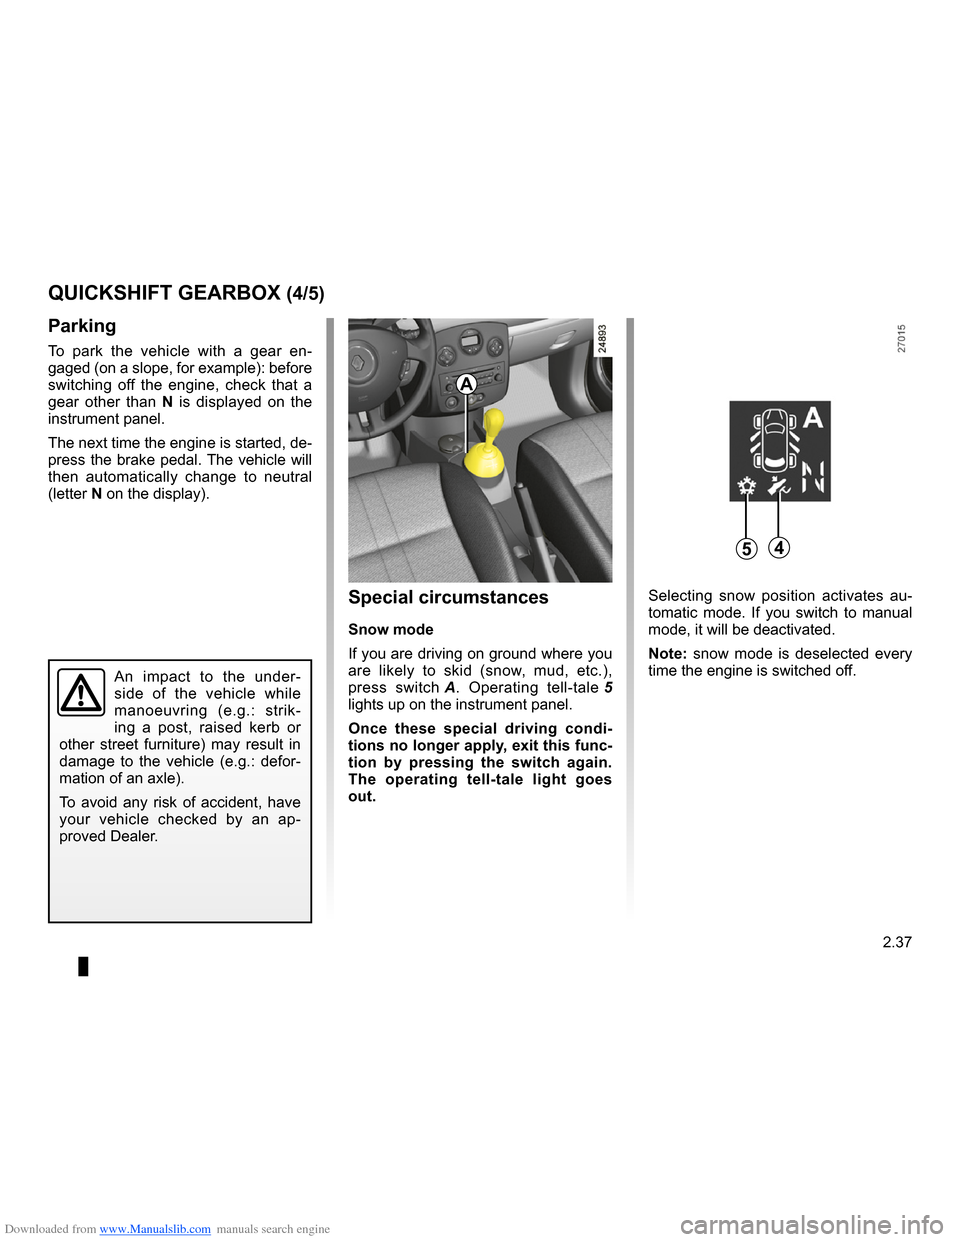 RENAULT CLIO 2009 X85 / 3.G Owners Manual, Page 129